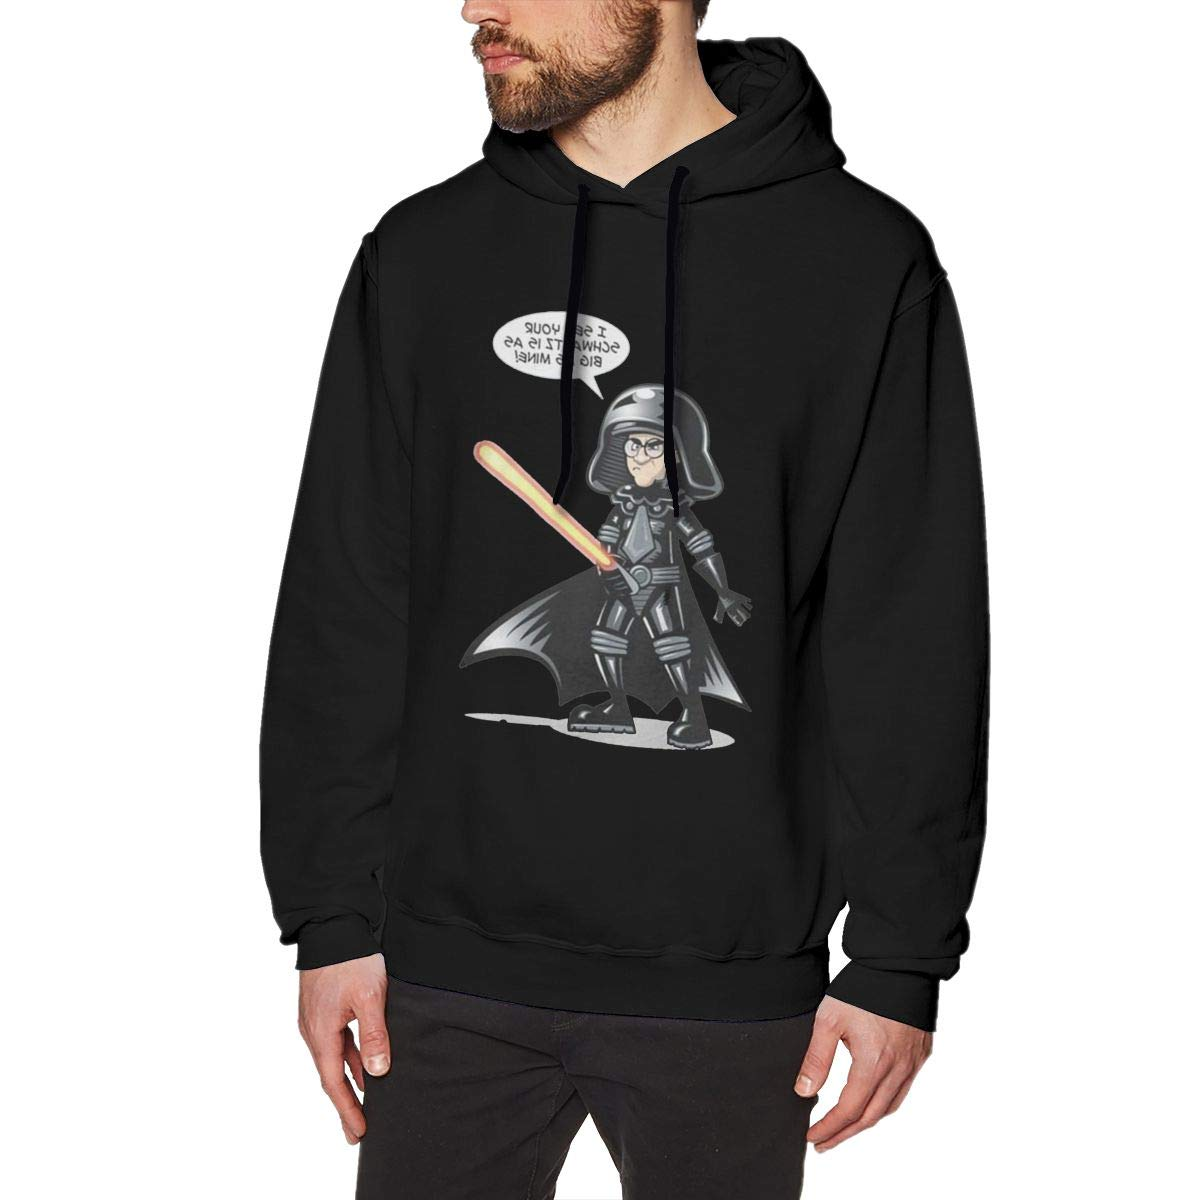 Mens Hooded Sweatshirt Spaceballs The Vermin The Fanart Oversized Classic Print Casual Black L